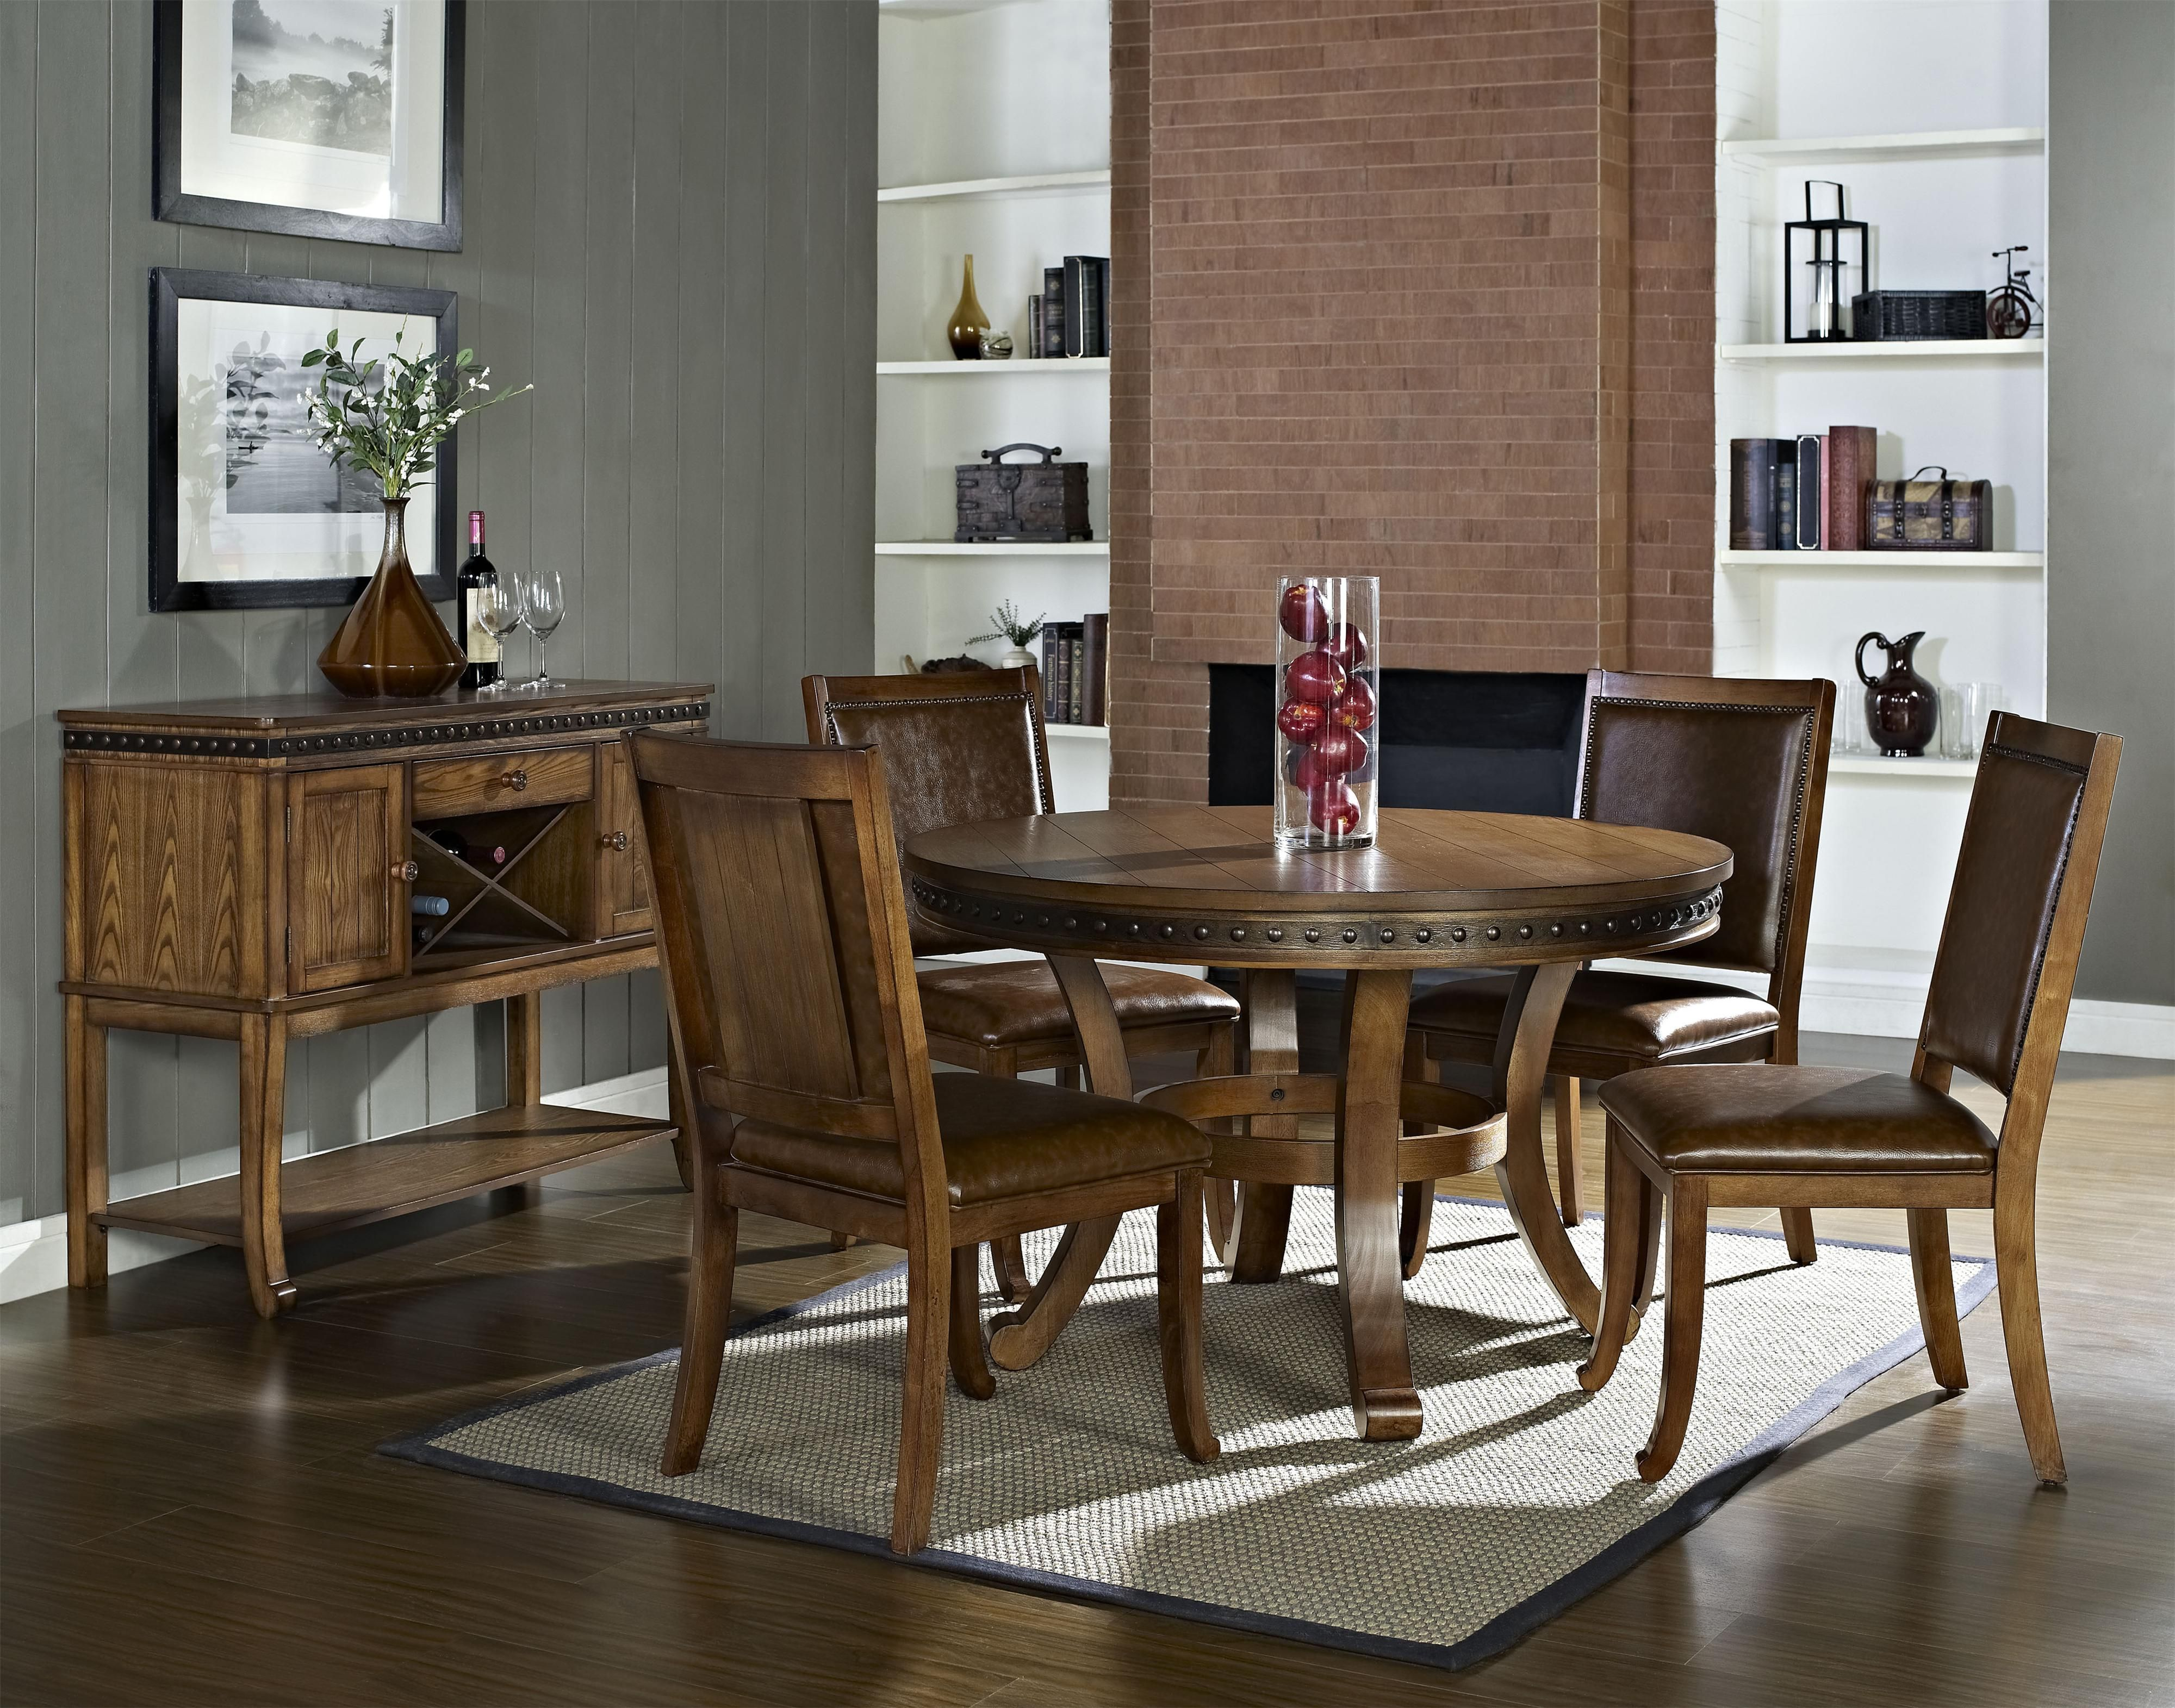 Ashbrook Round Pedestal Table GREAT AMERICAN HOME STORE $800 ...